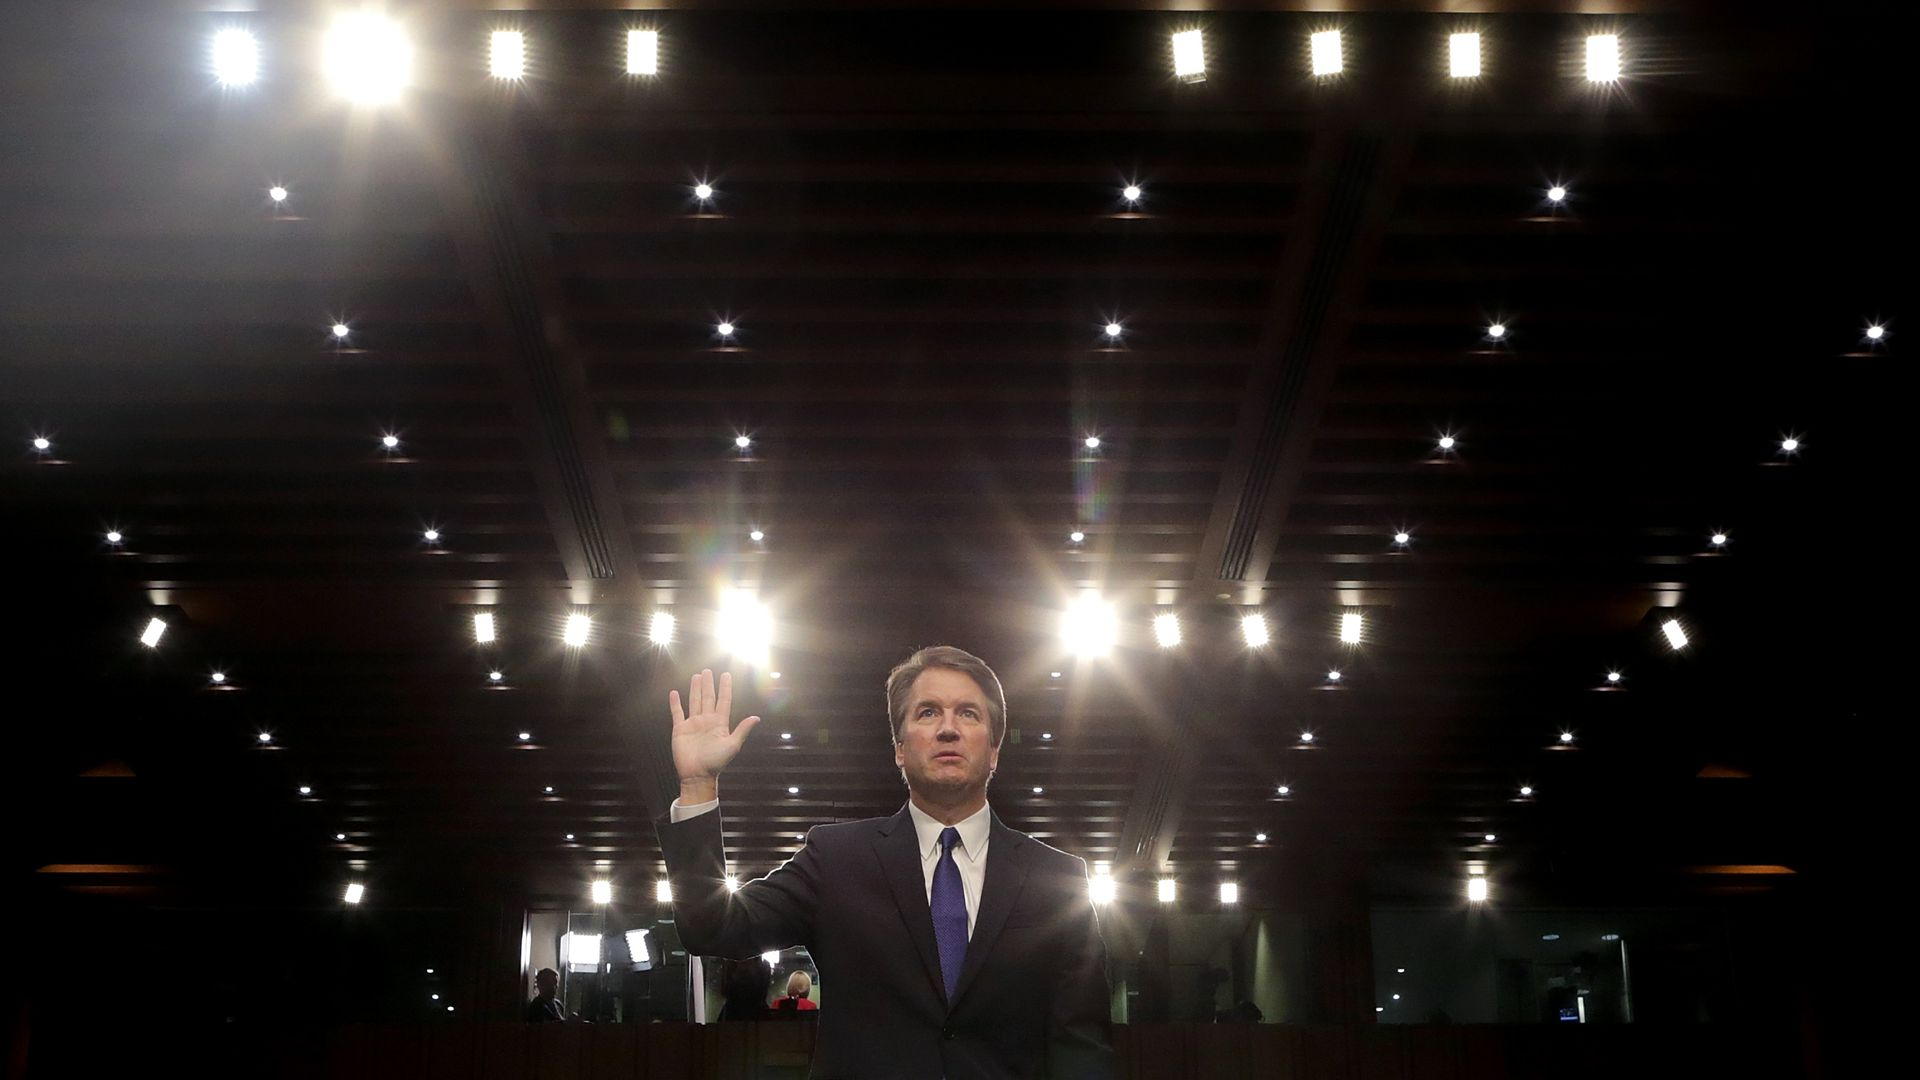 Brett Kavanaugh before the Senate Judiciary Committee